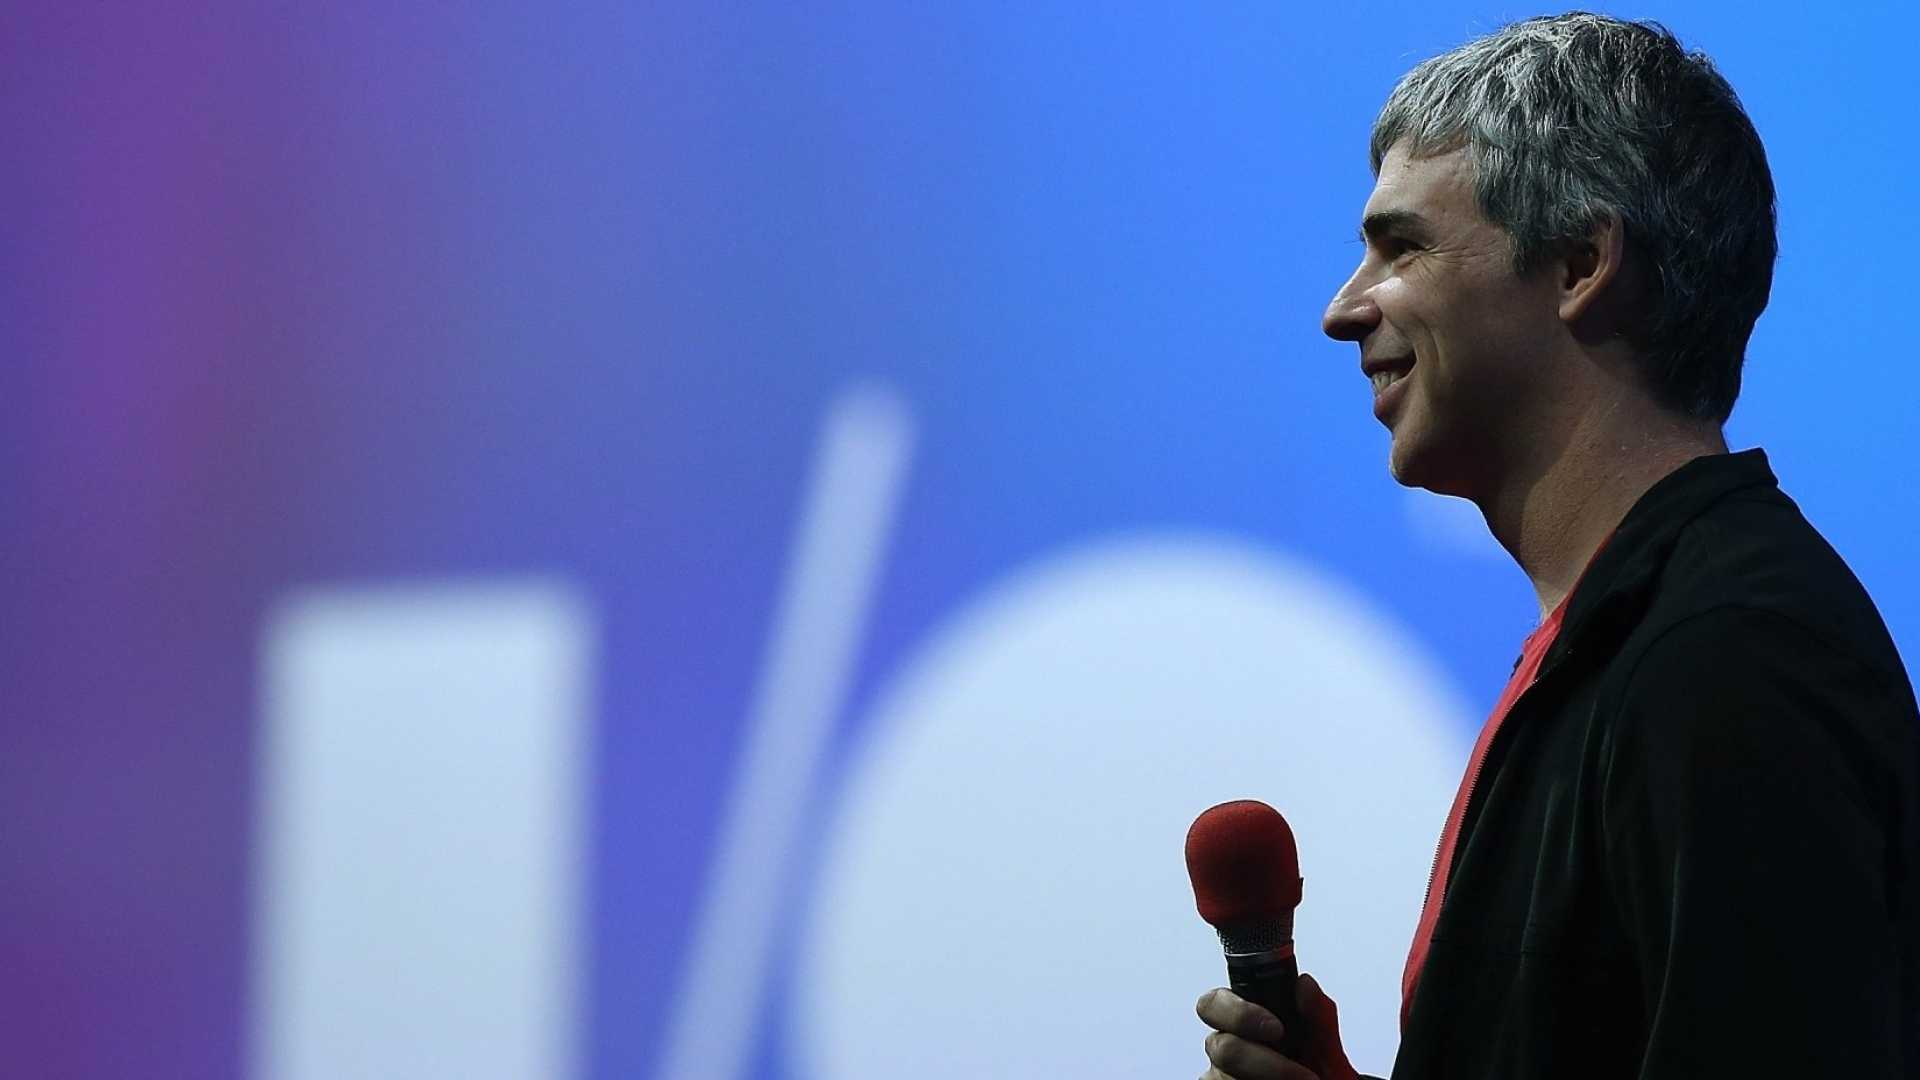 Mark Zuckerberg, Larry Page, and Jack Dorsey All Refuse to Use This Word